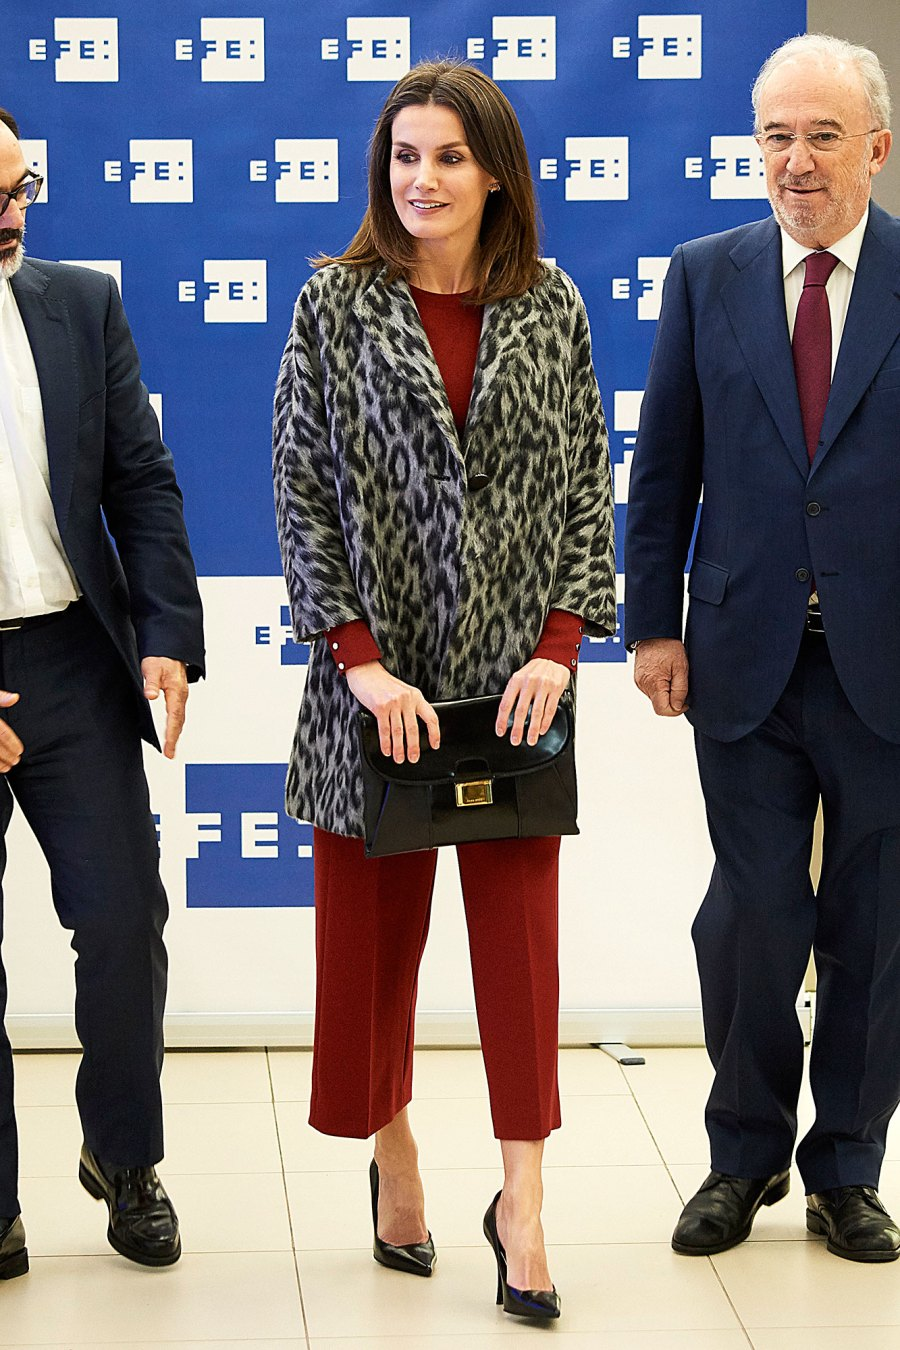 Queen Letizia Adds Leopard Print to the Looks She Can Pull Off Effortlessly